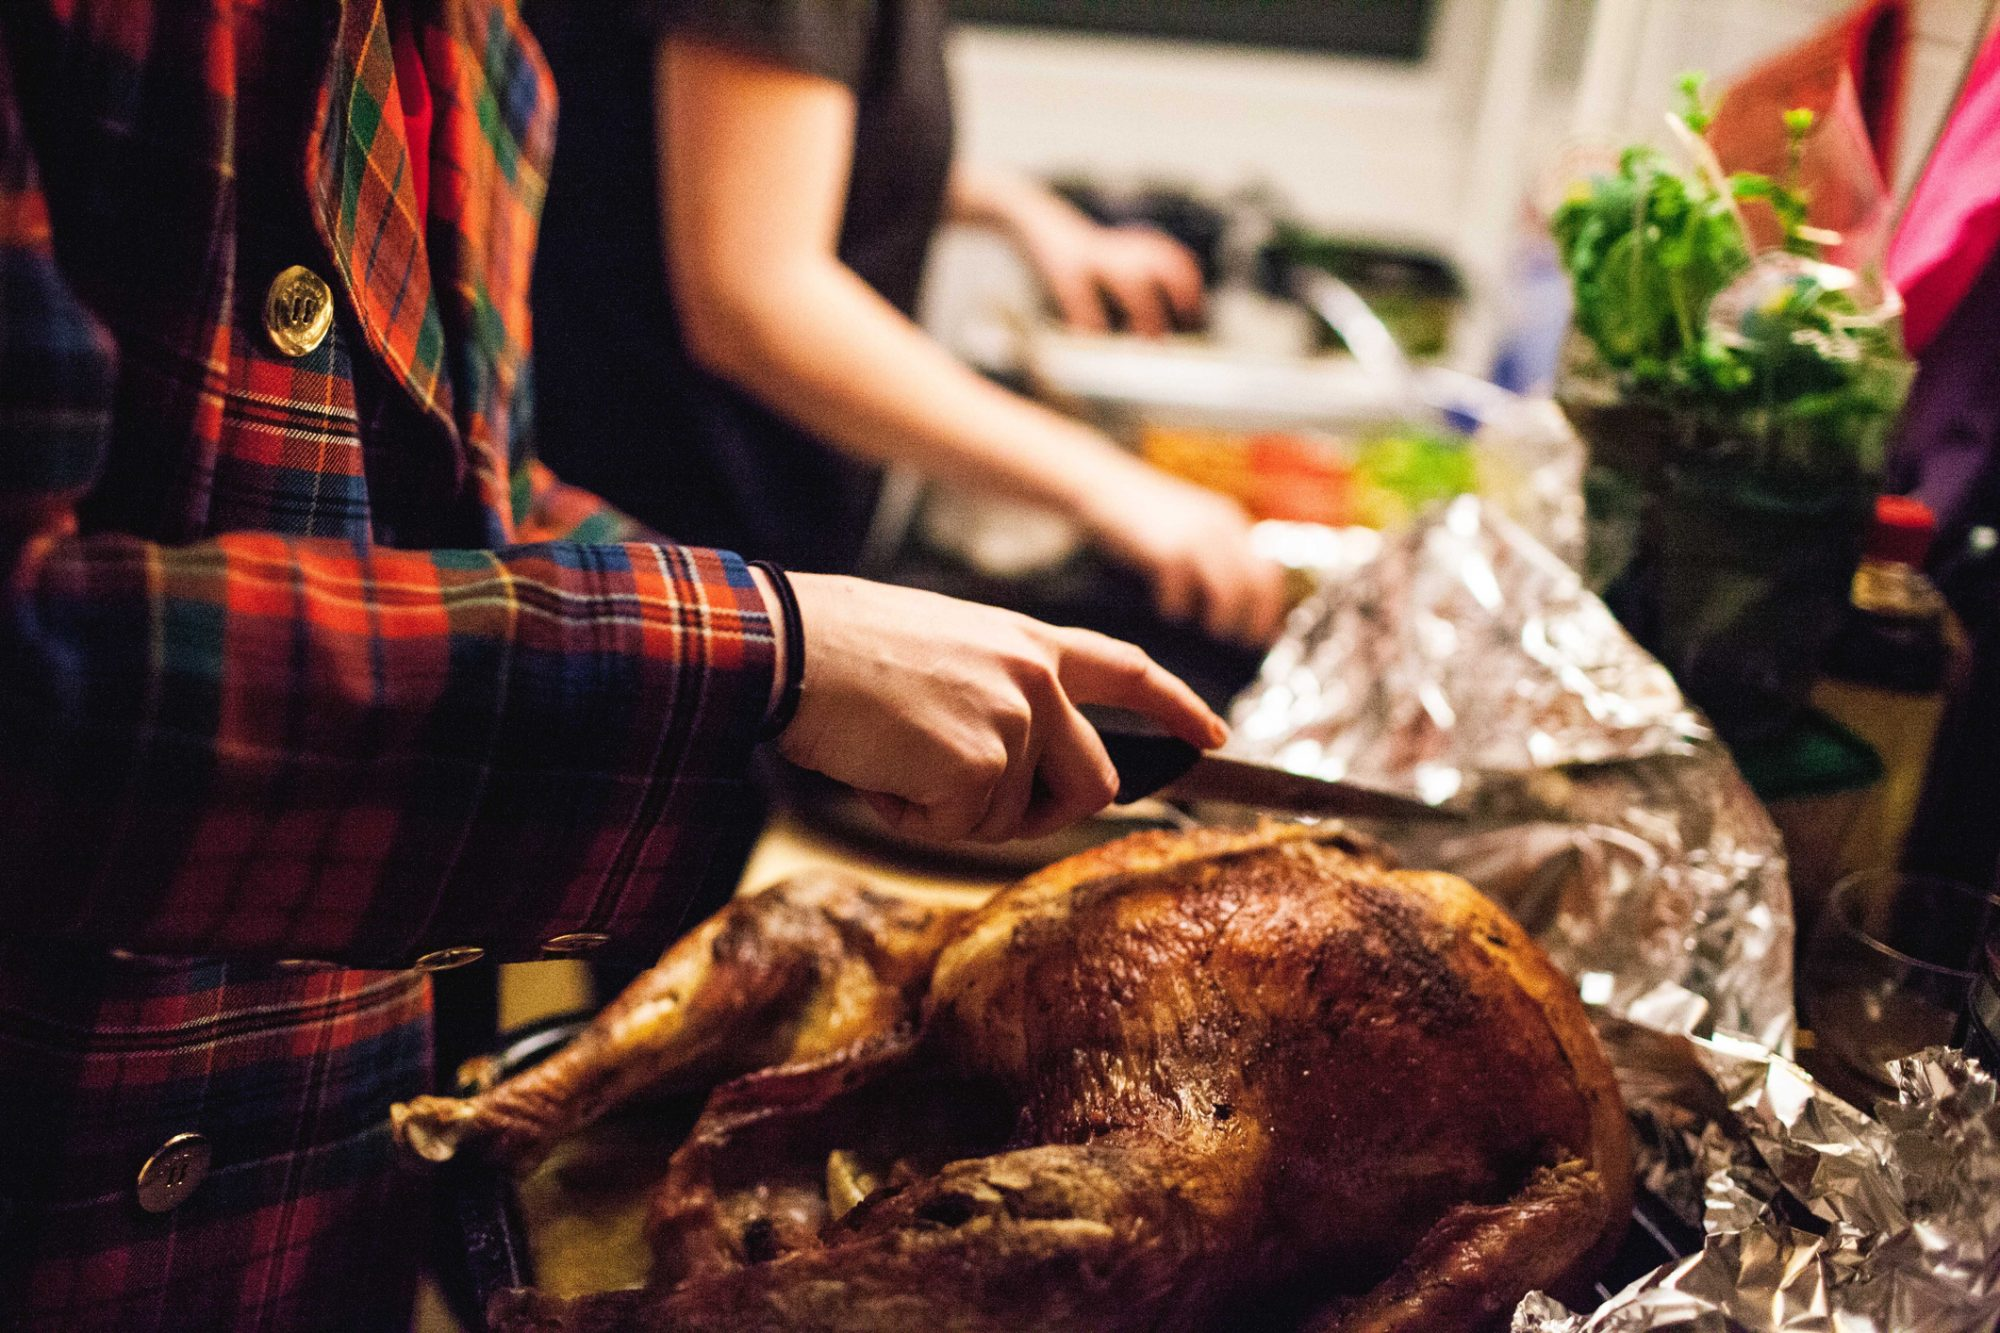 Person Holding Kitchen Knife On Thanksgiving Turkey At Home